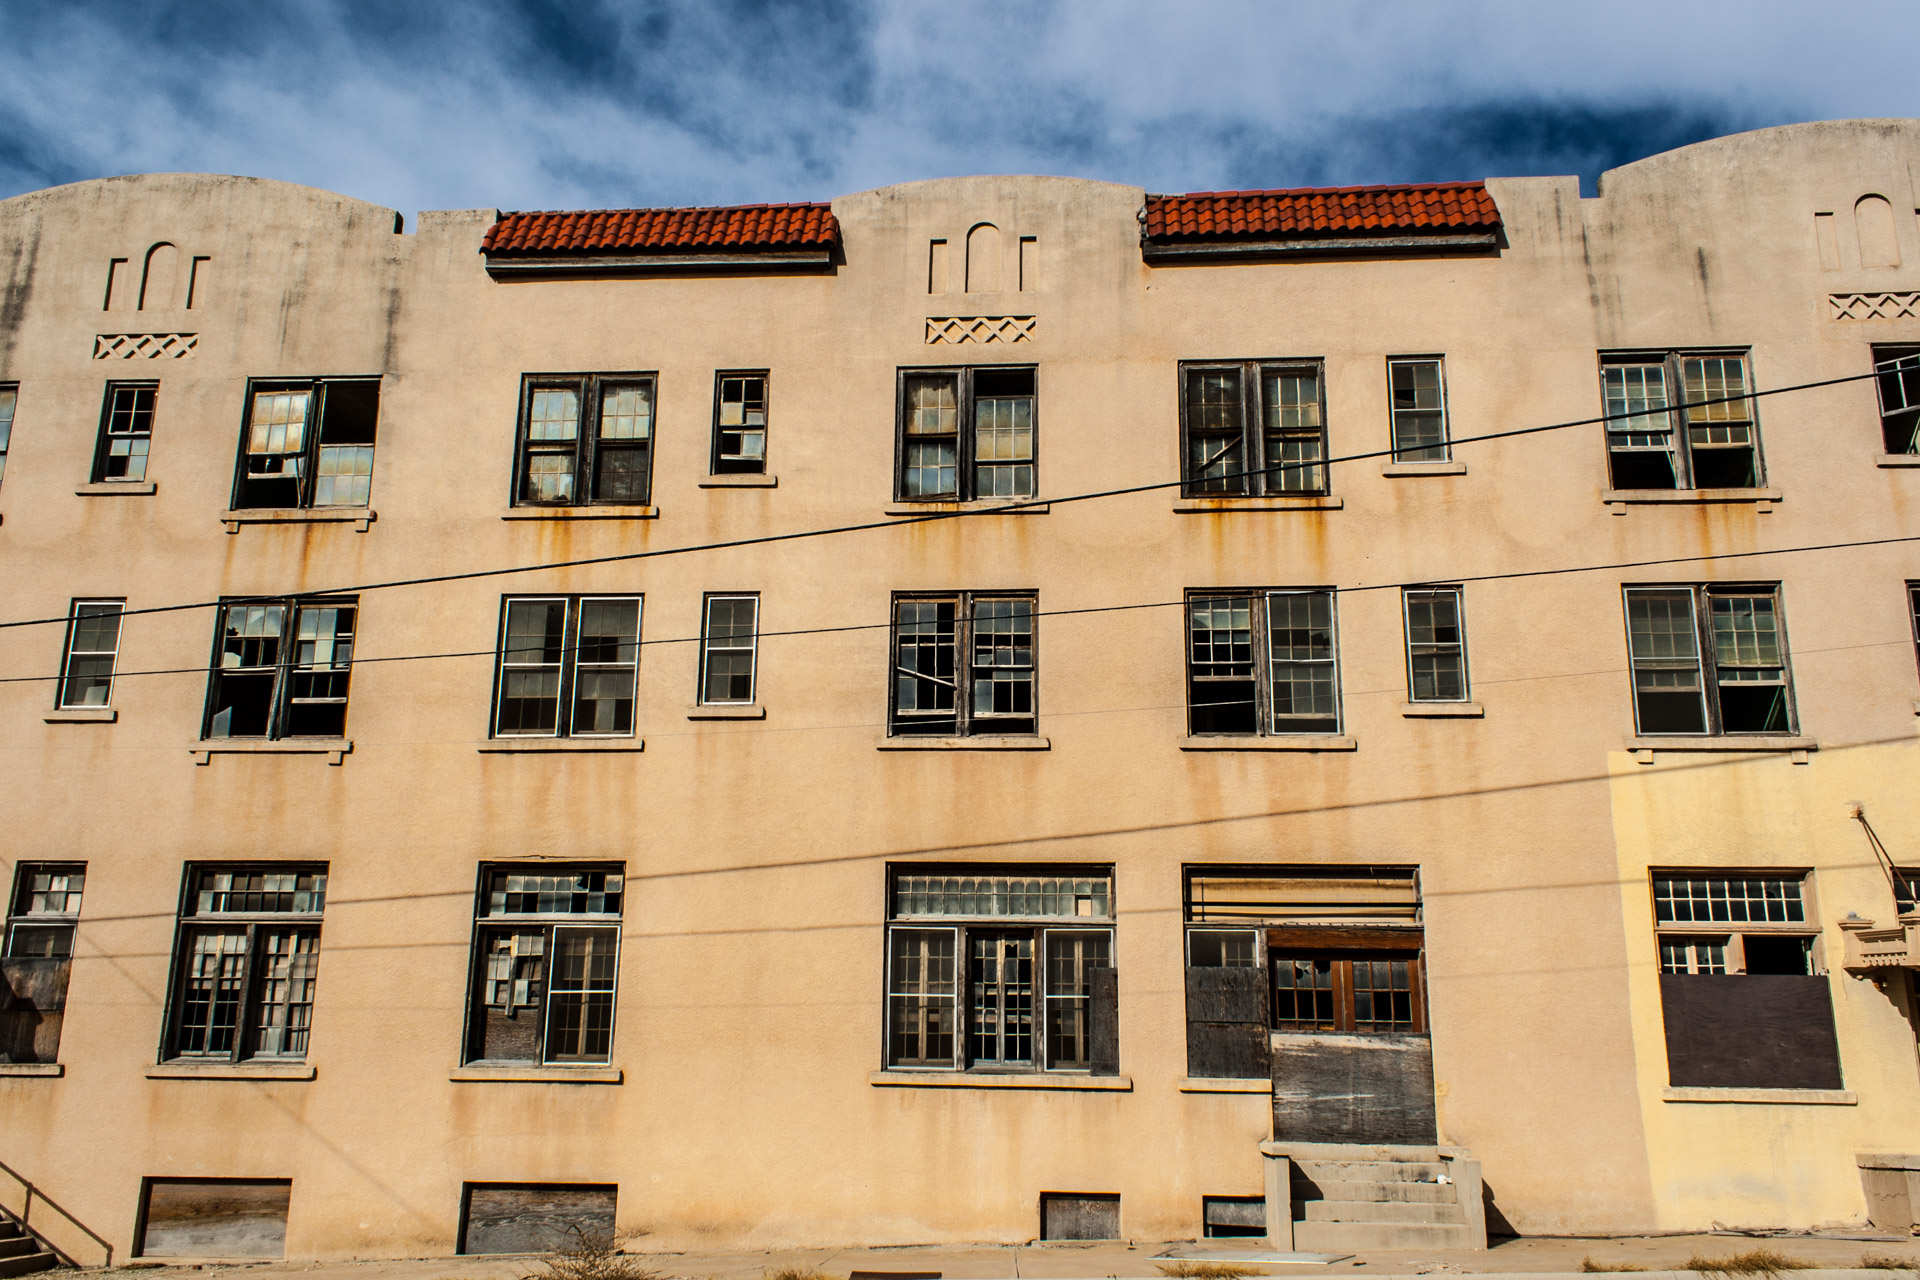 Ozona, Texas - The Hotel Ozona (side mid)